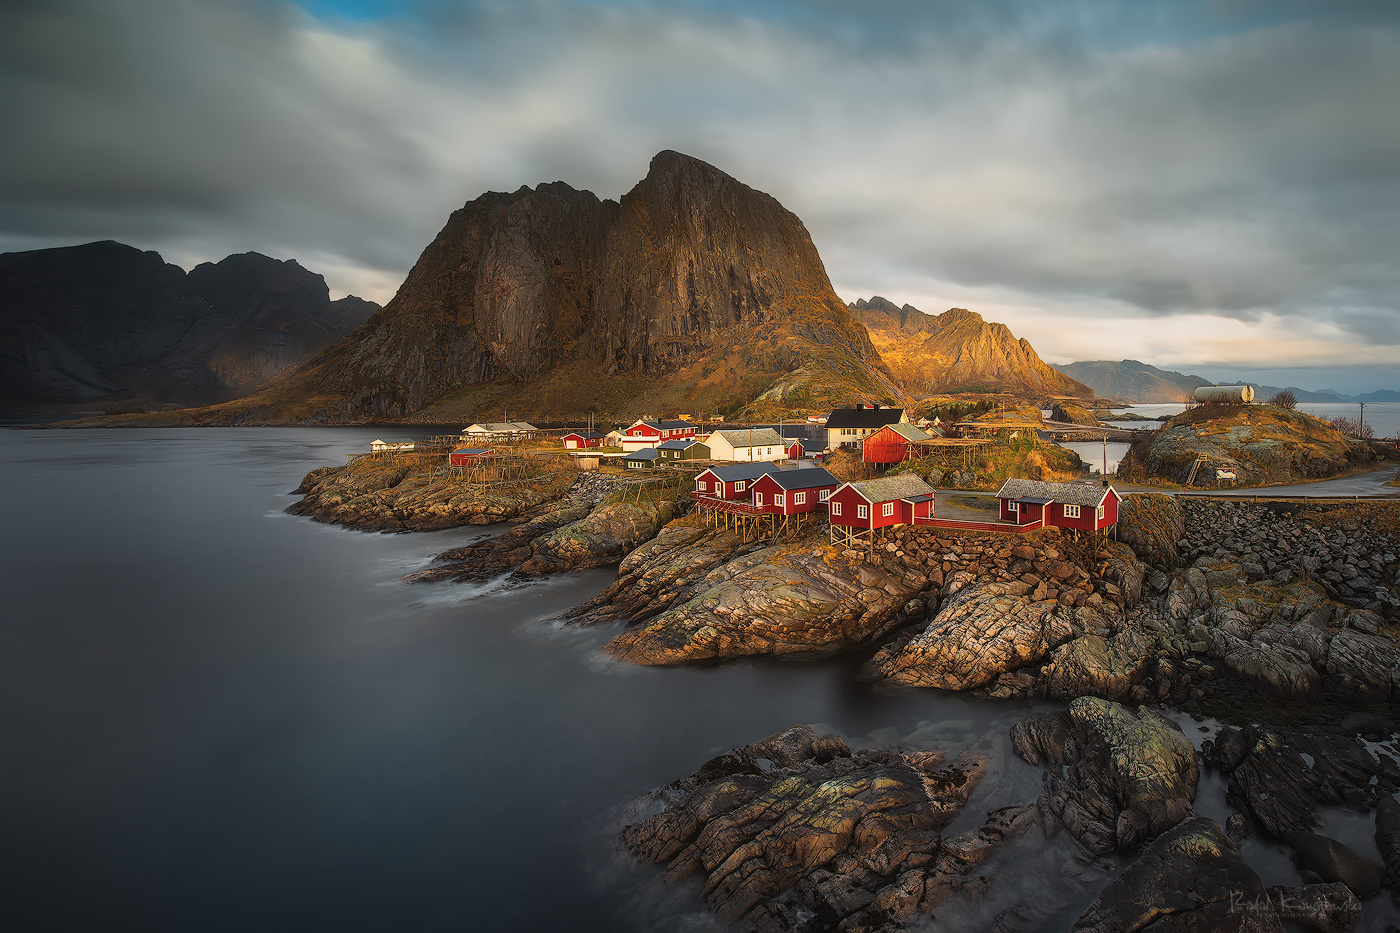 Red houses in Hamnoy by Rafal Kani